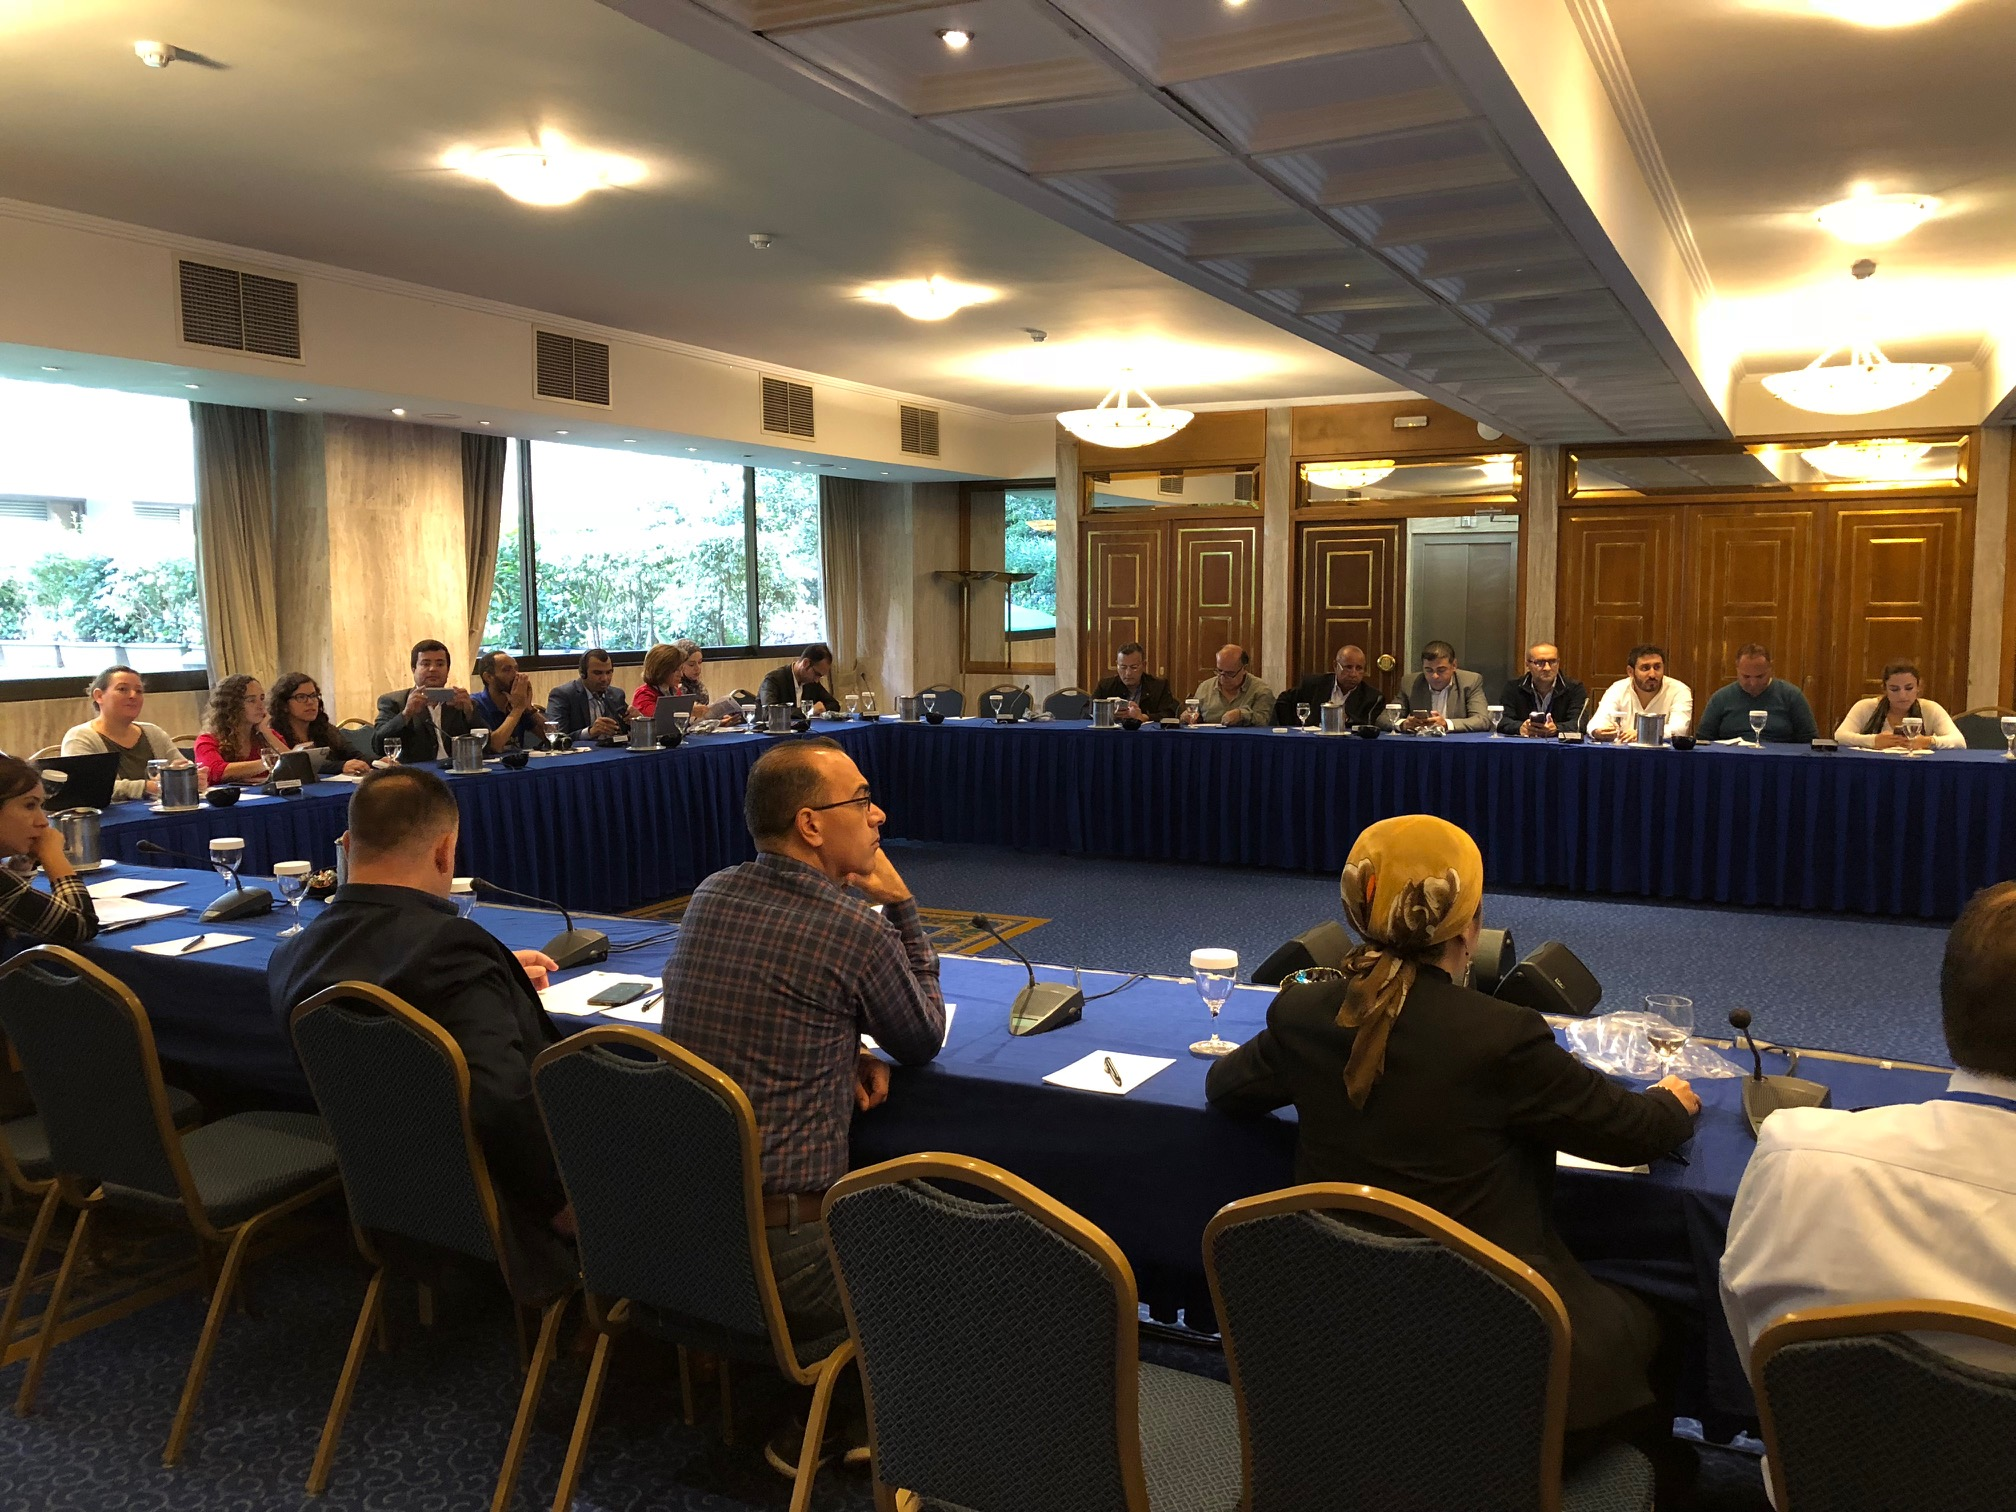 24-25 October 2018, Athens, Greece – SWIM-H2020 SM Regional On-Site Training on Marine Litter Monitoring and Management